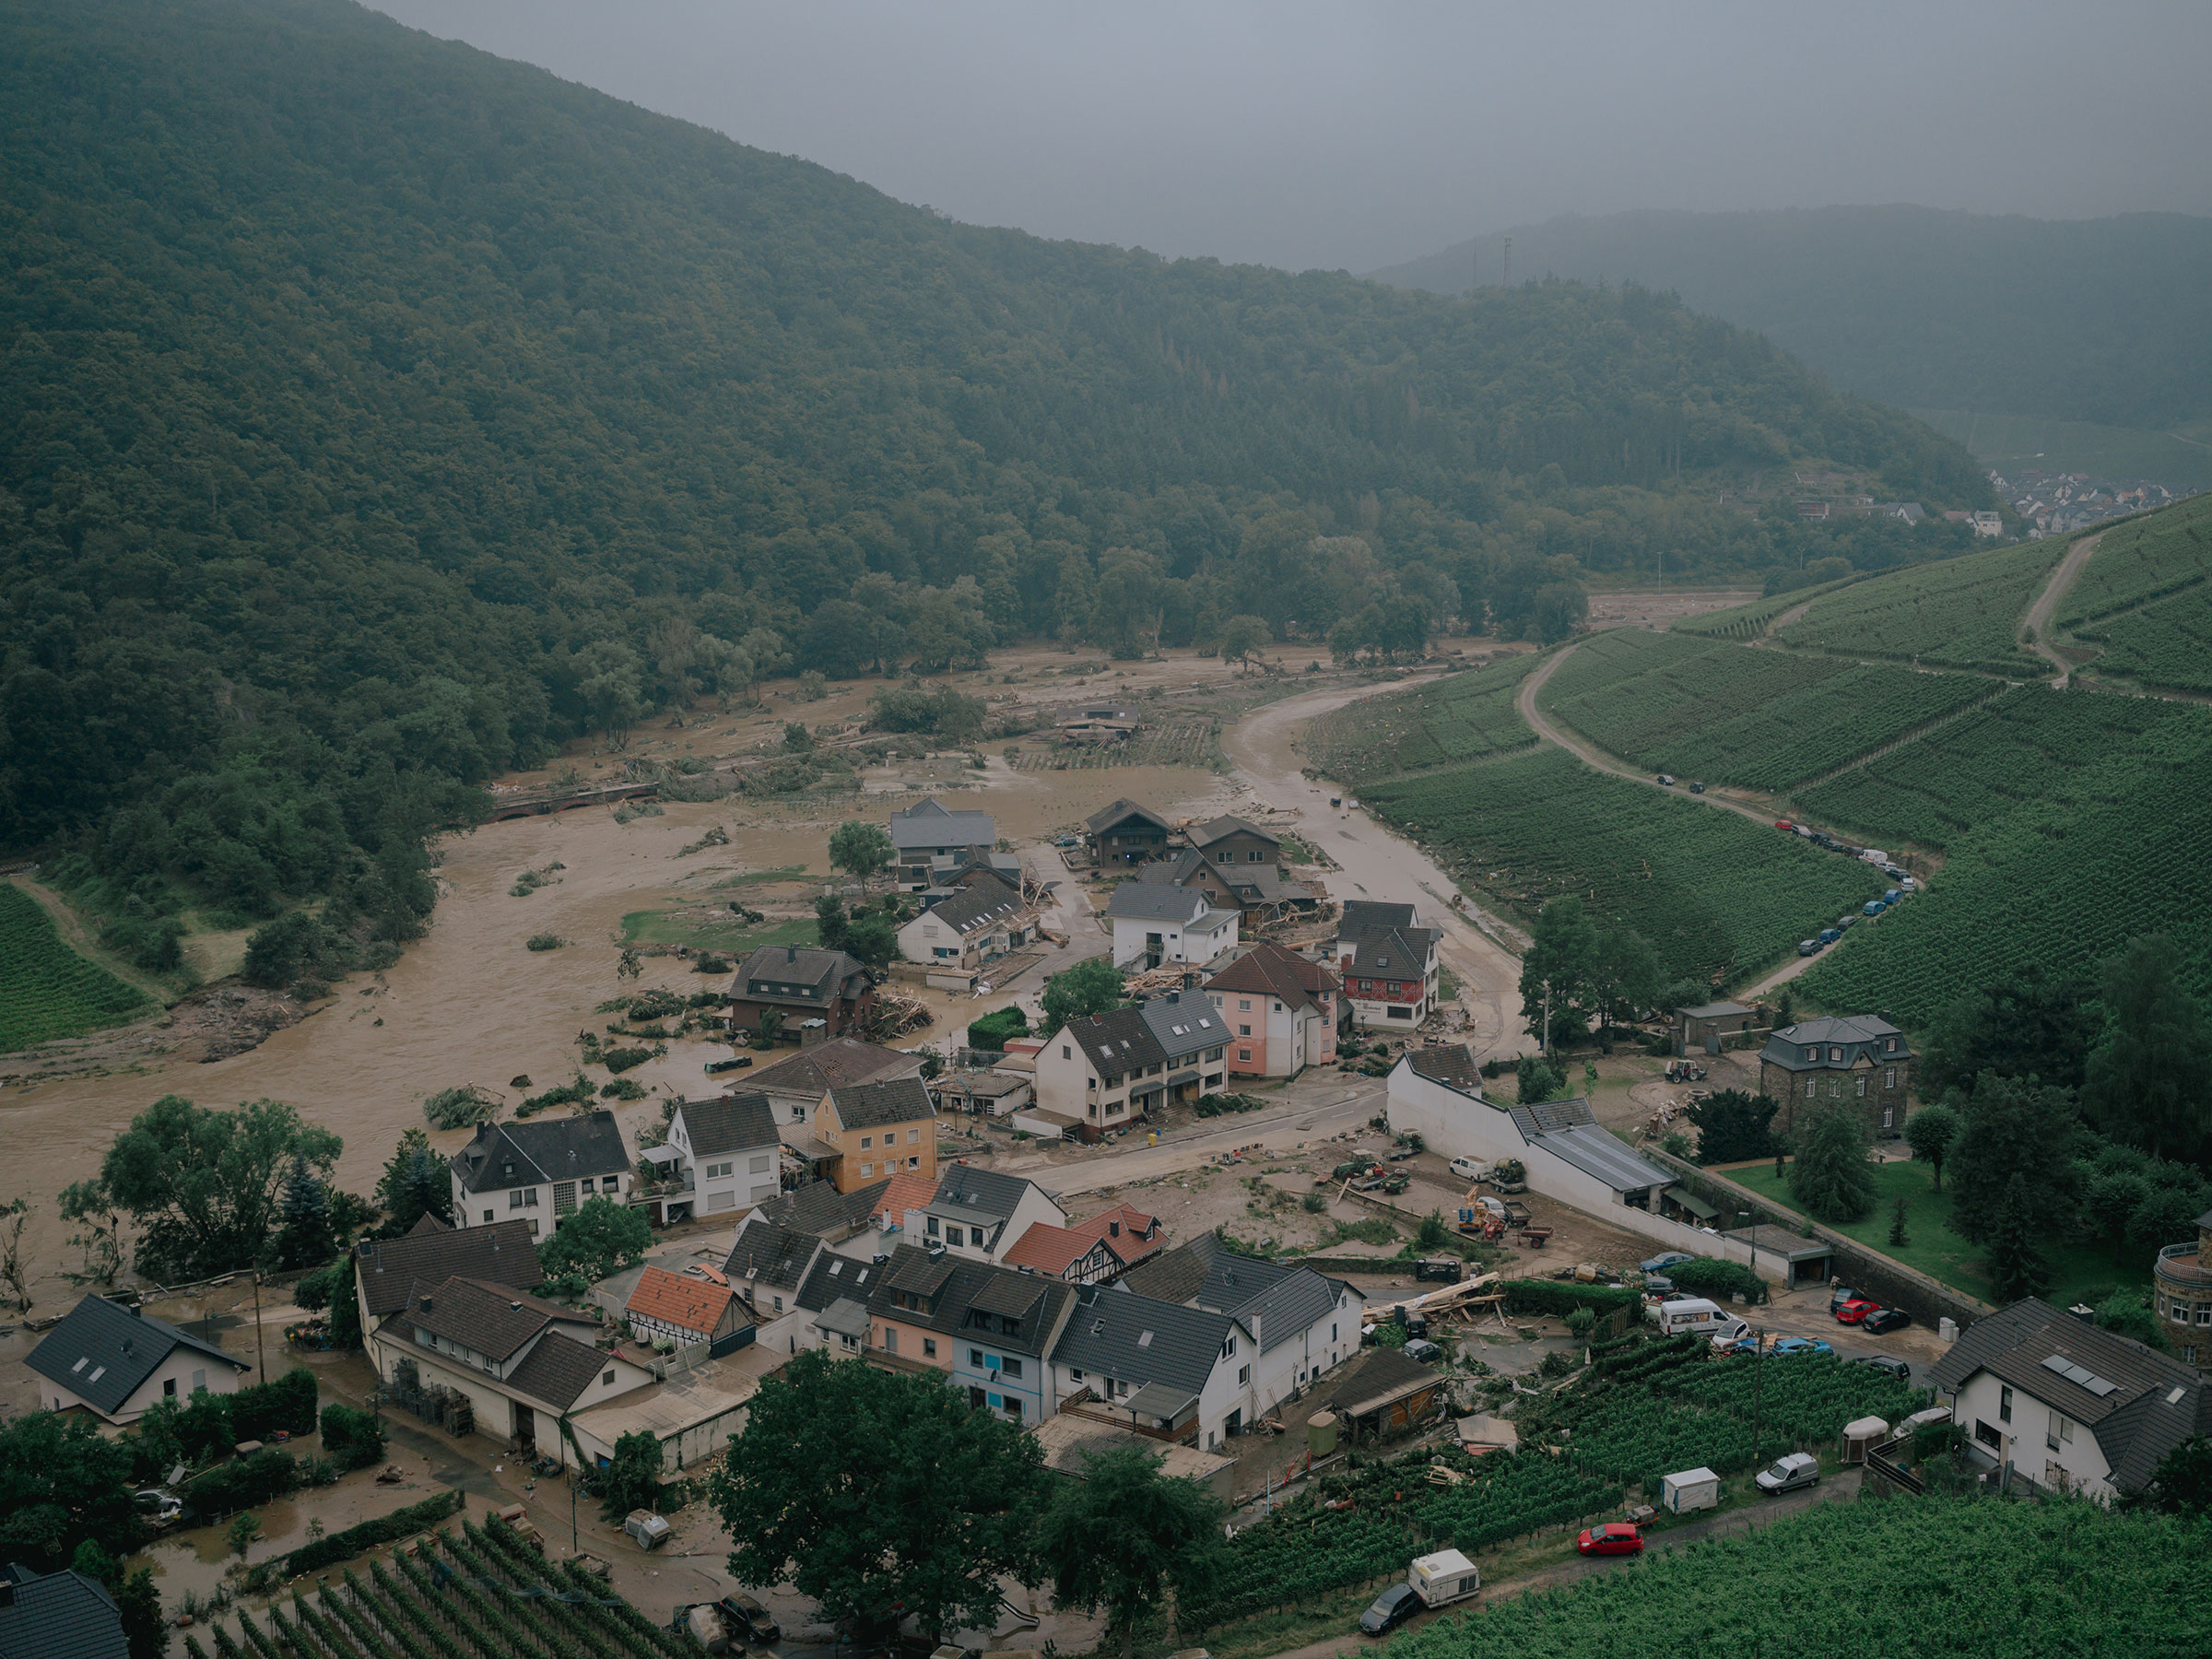 A view of the flood-damaged village of Dernau from a hillside on July 15.